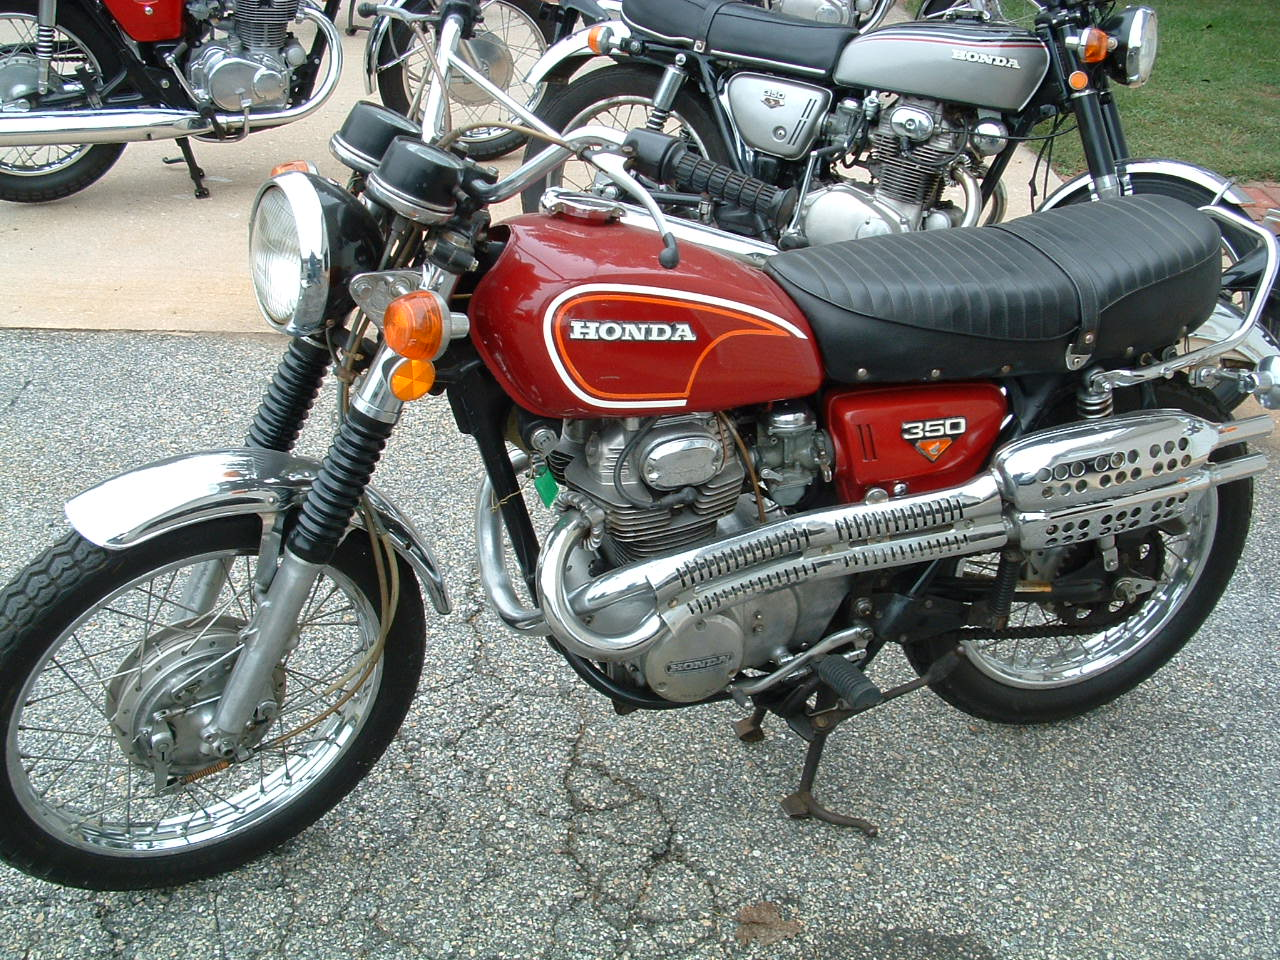 Honda Of Greeley >> First Bike Questions - How do I find a VIN search for a 1973 CL350?